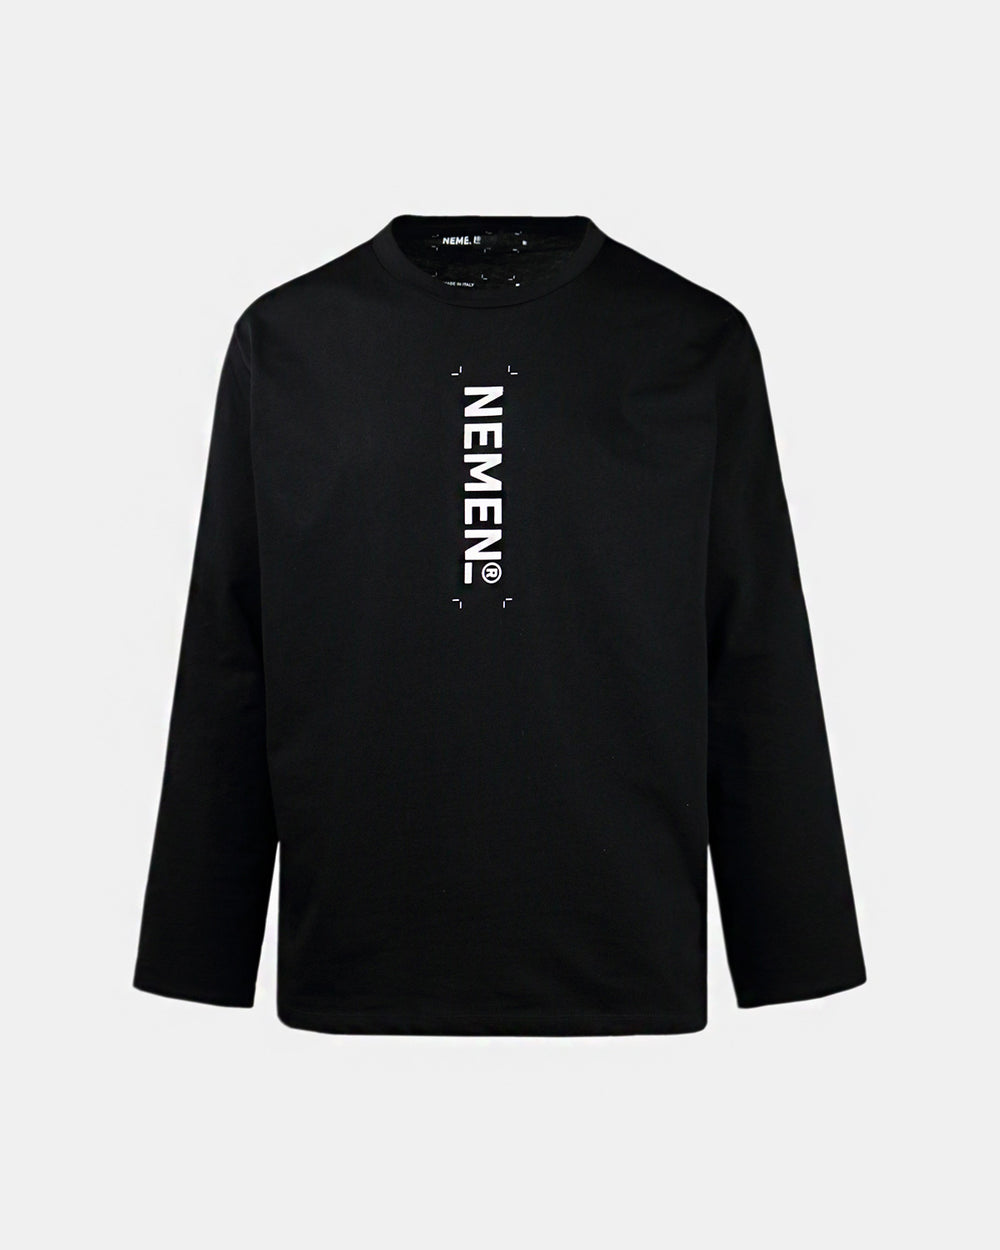 Nemen - Printed Logo Long Sleeve Tee (Black)